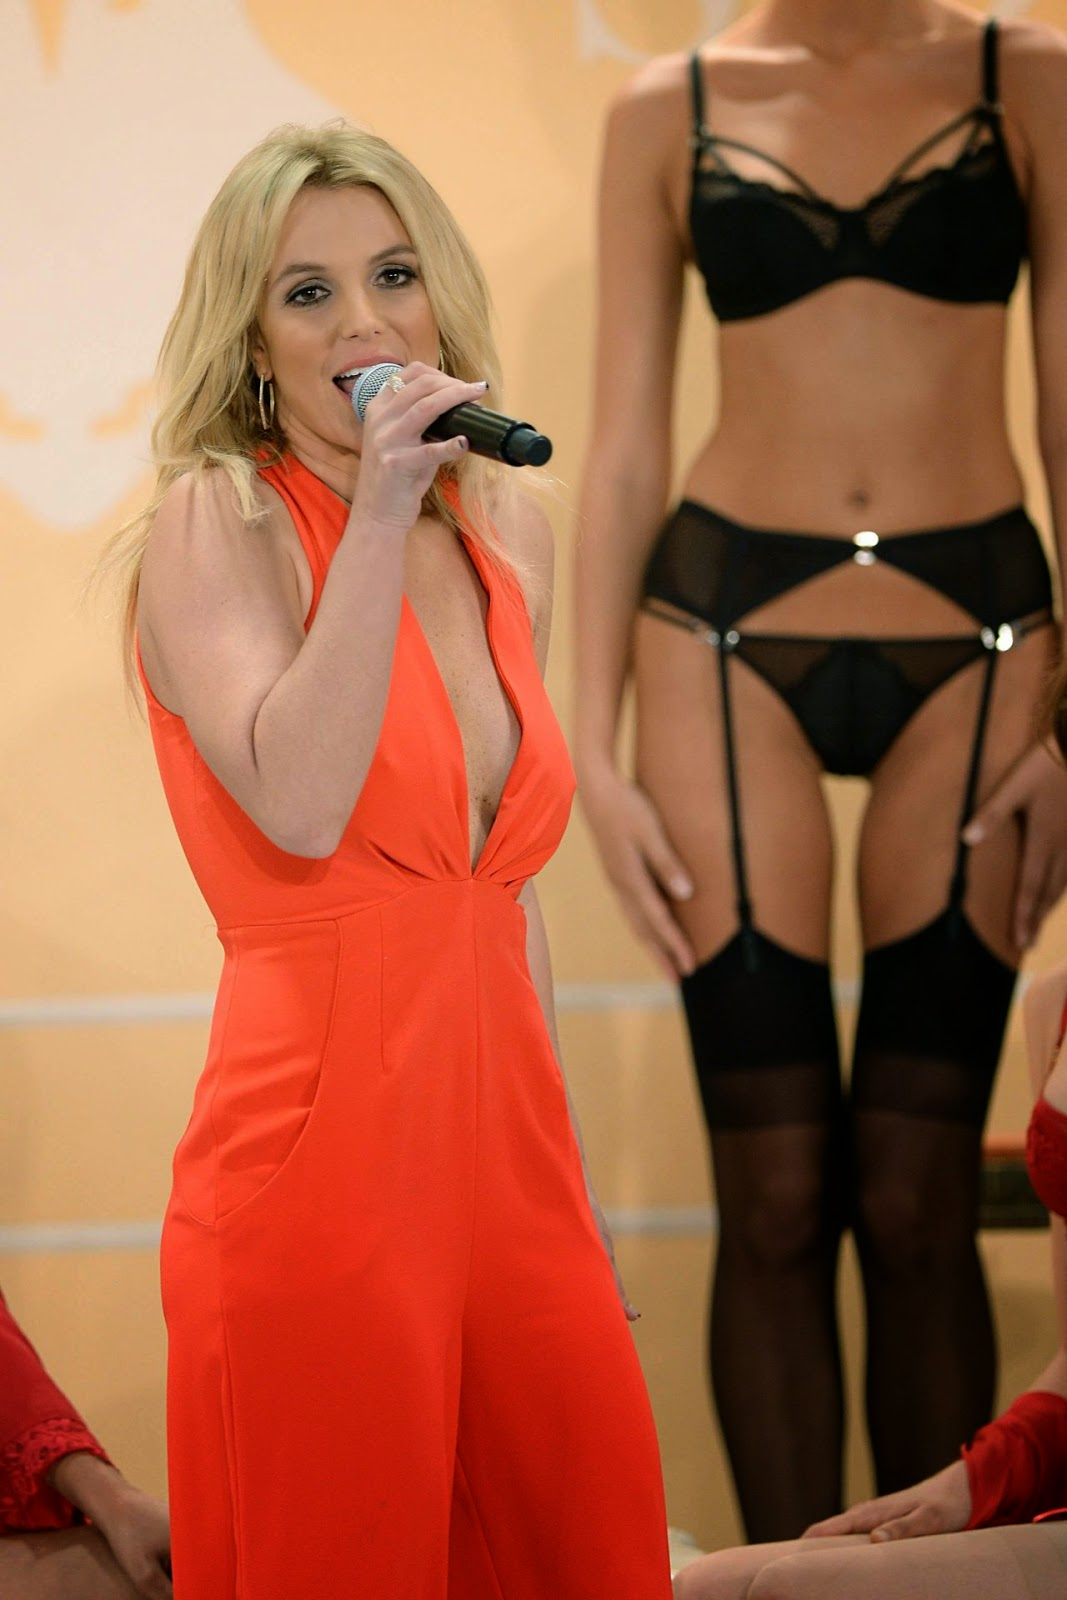 Britney Spears unveils new lingerie collection 'The Intimate Britney Spears' in New York City